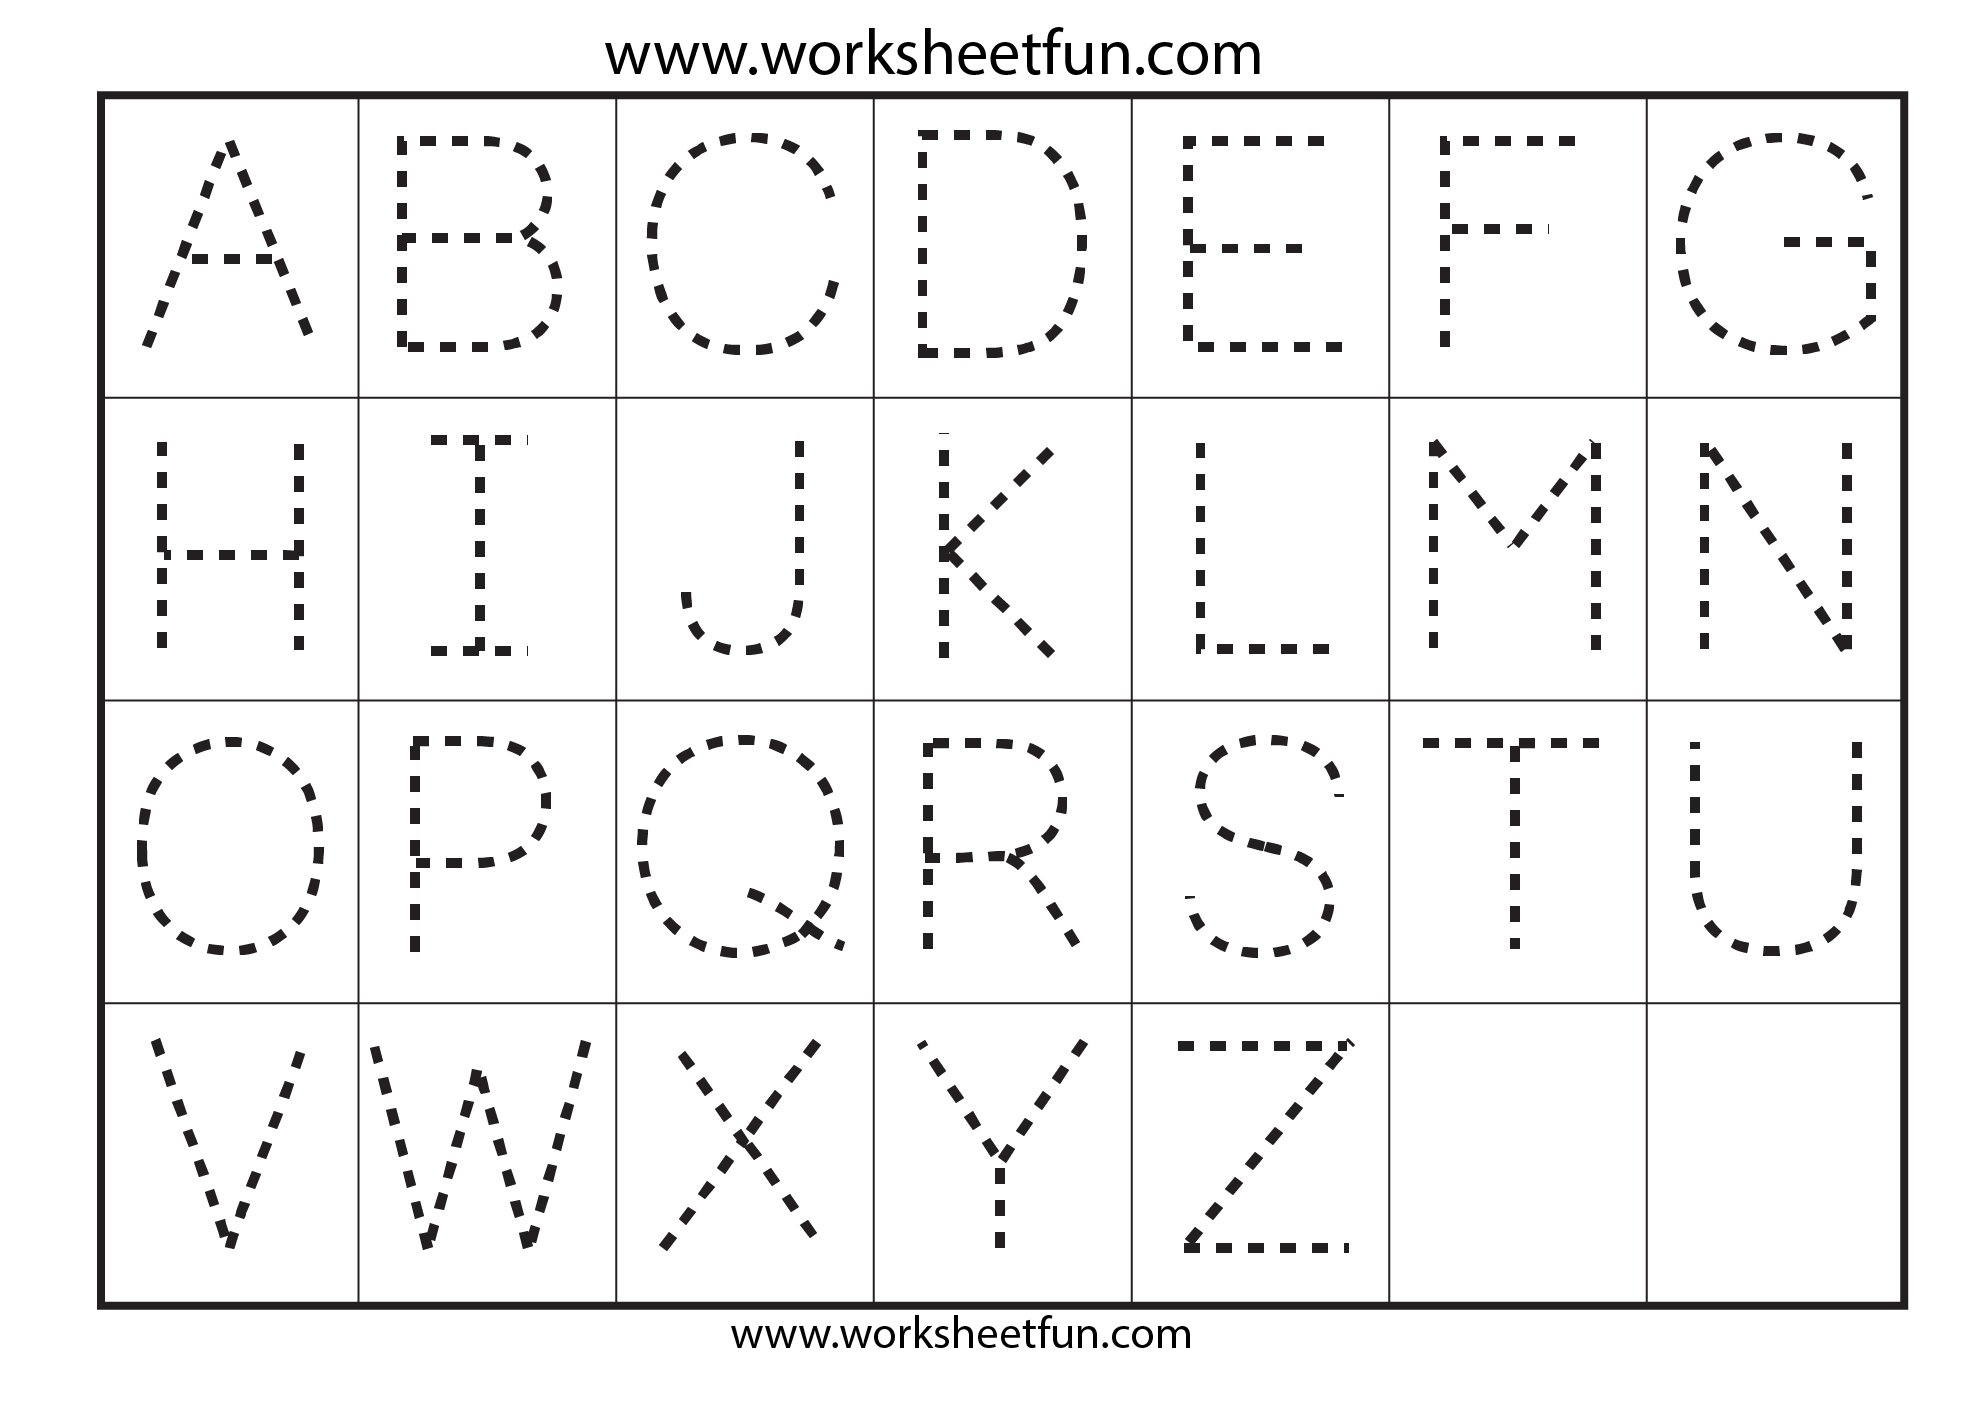 Worksheet Kindergarten Tracing Letters Wosenly Free Worksheet – Letter Tracing Worksheets for Kindergarten